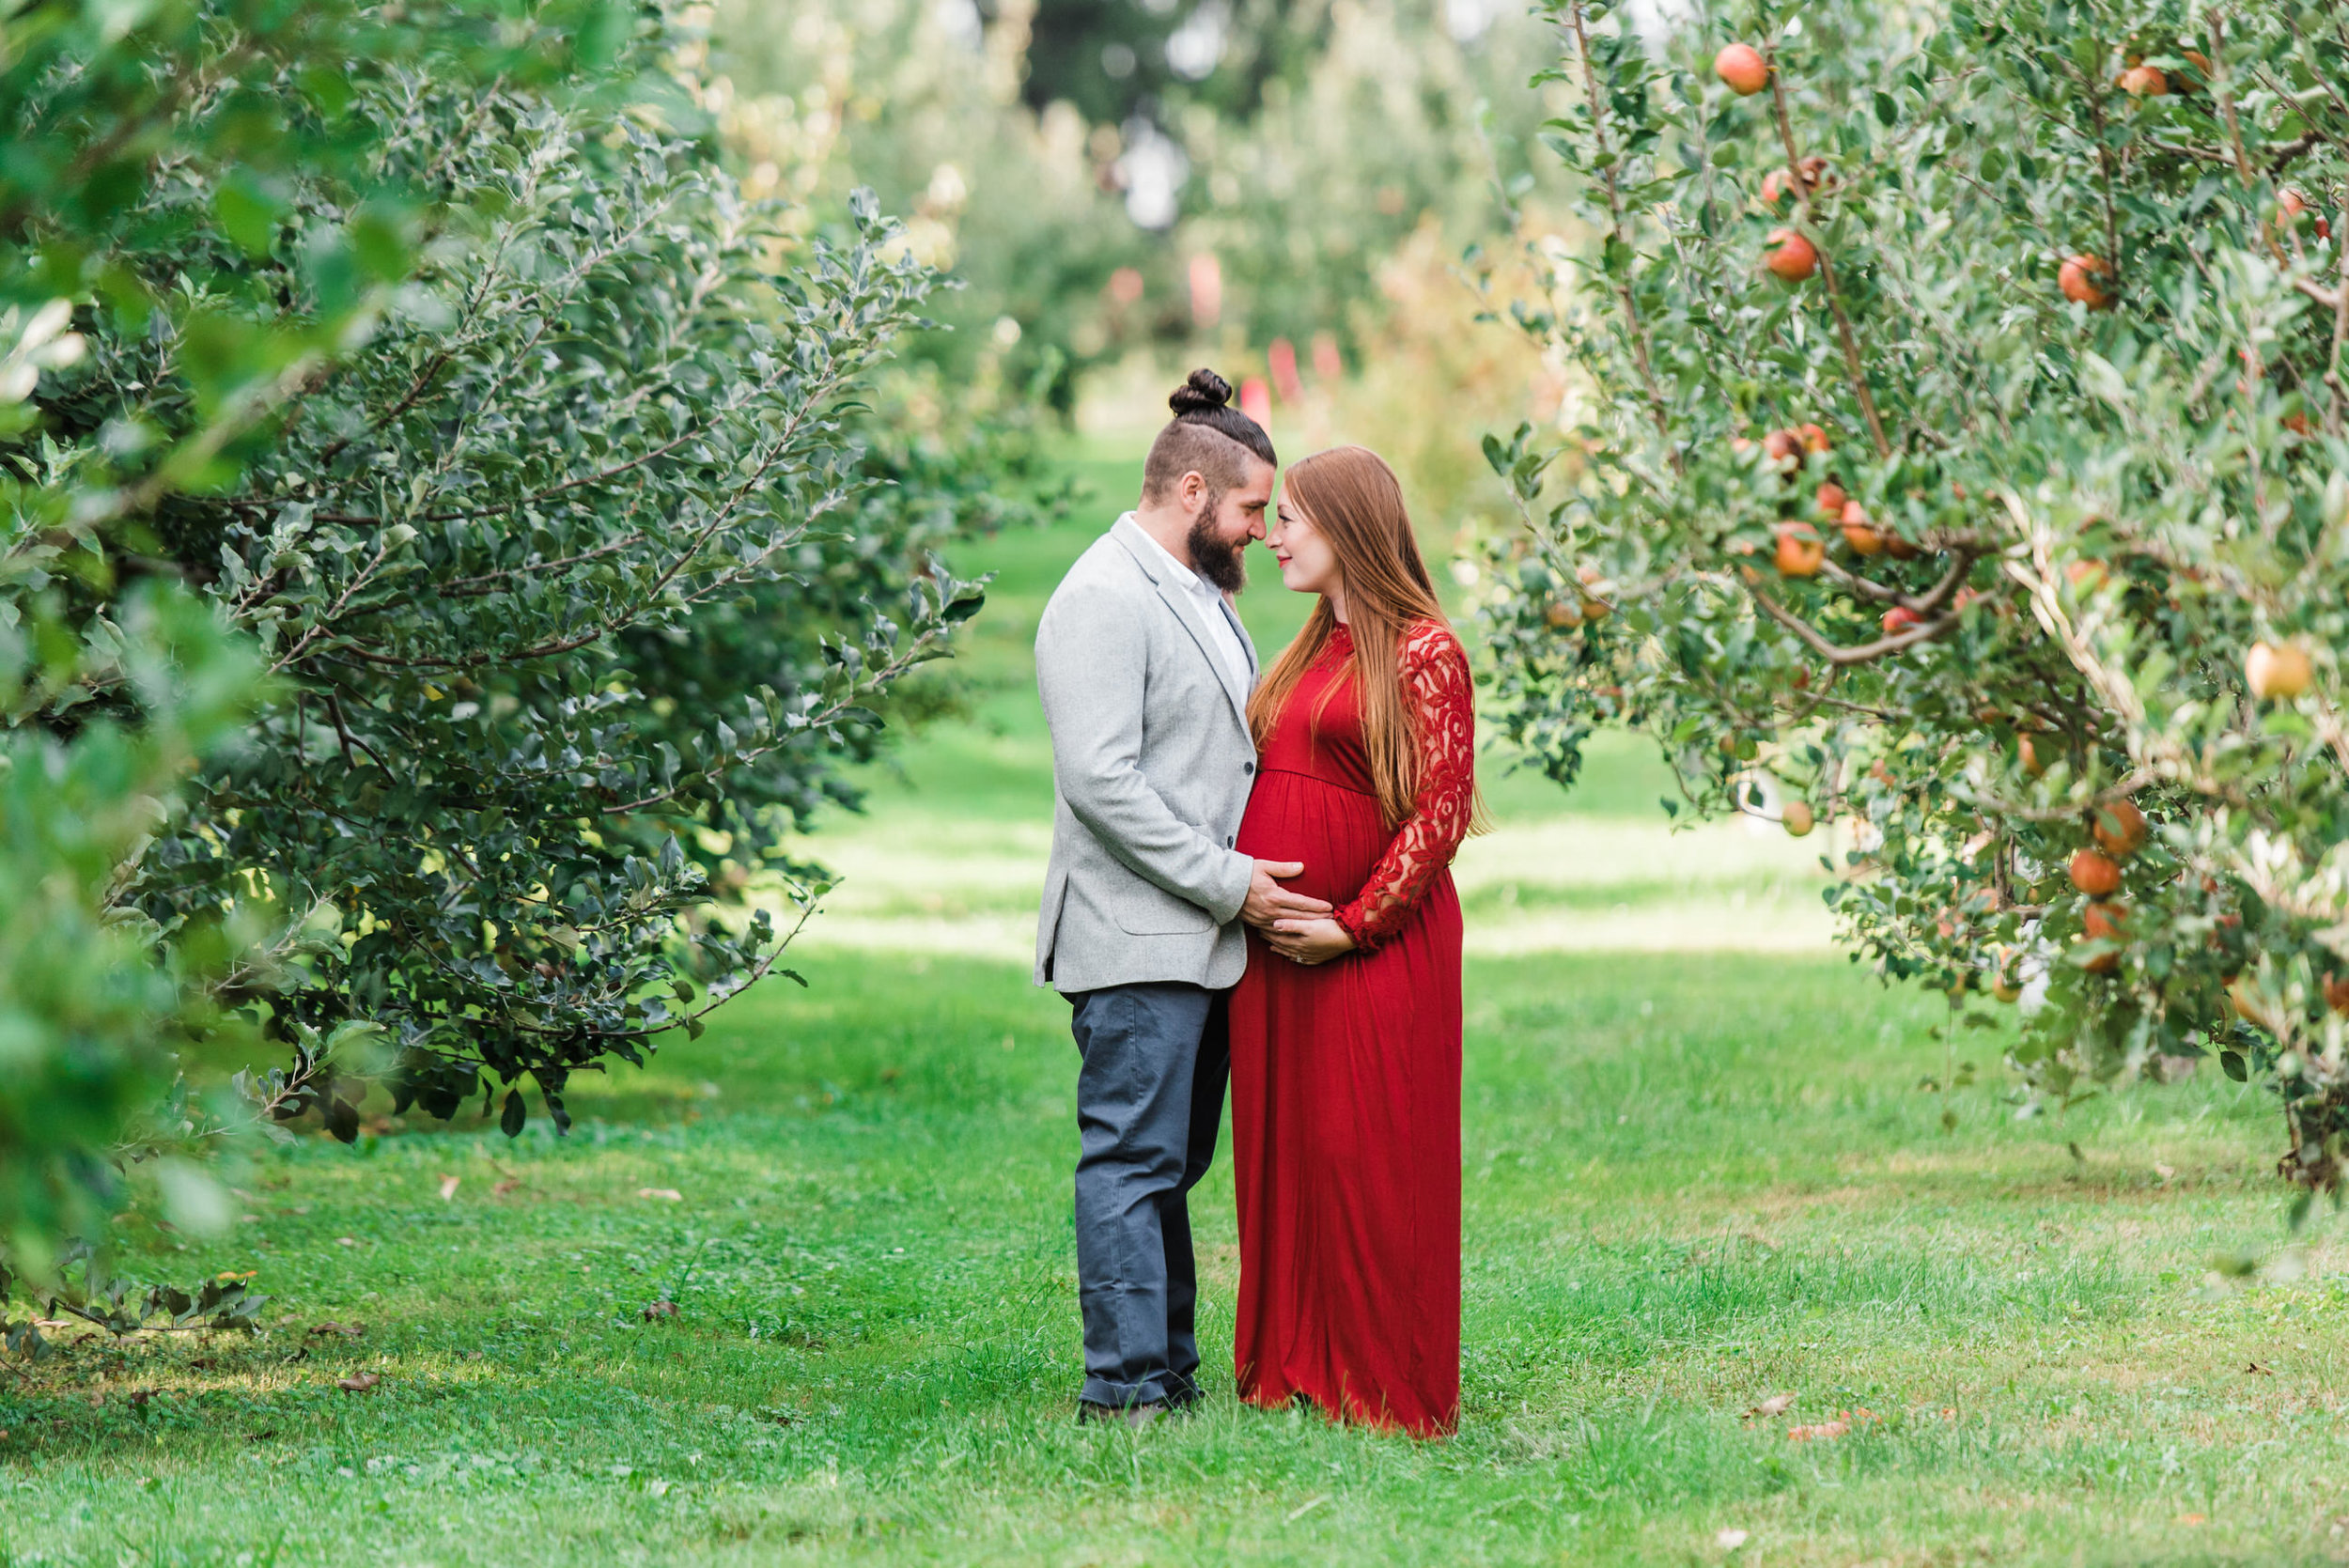 pittsburgh-maternity-photographers-winery-apple-orchard-session_23.jpg